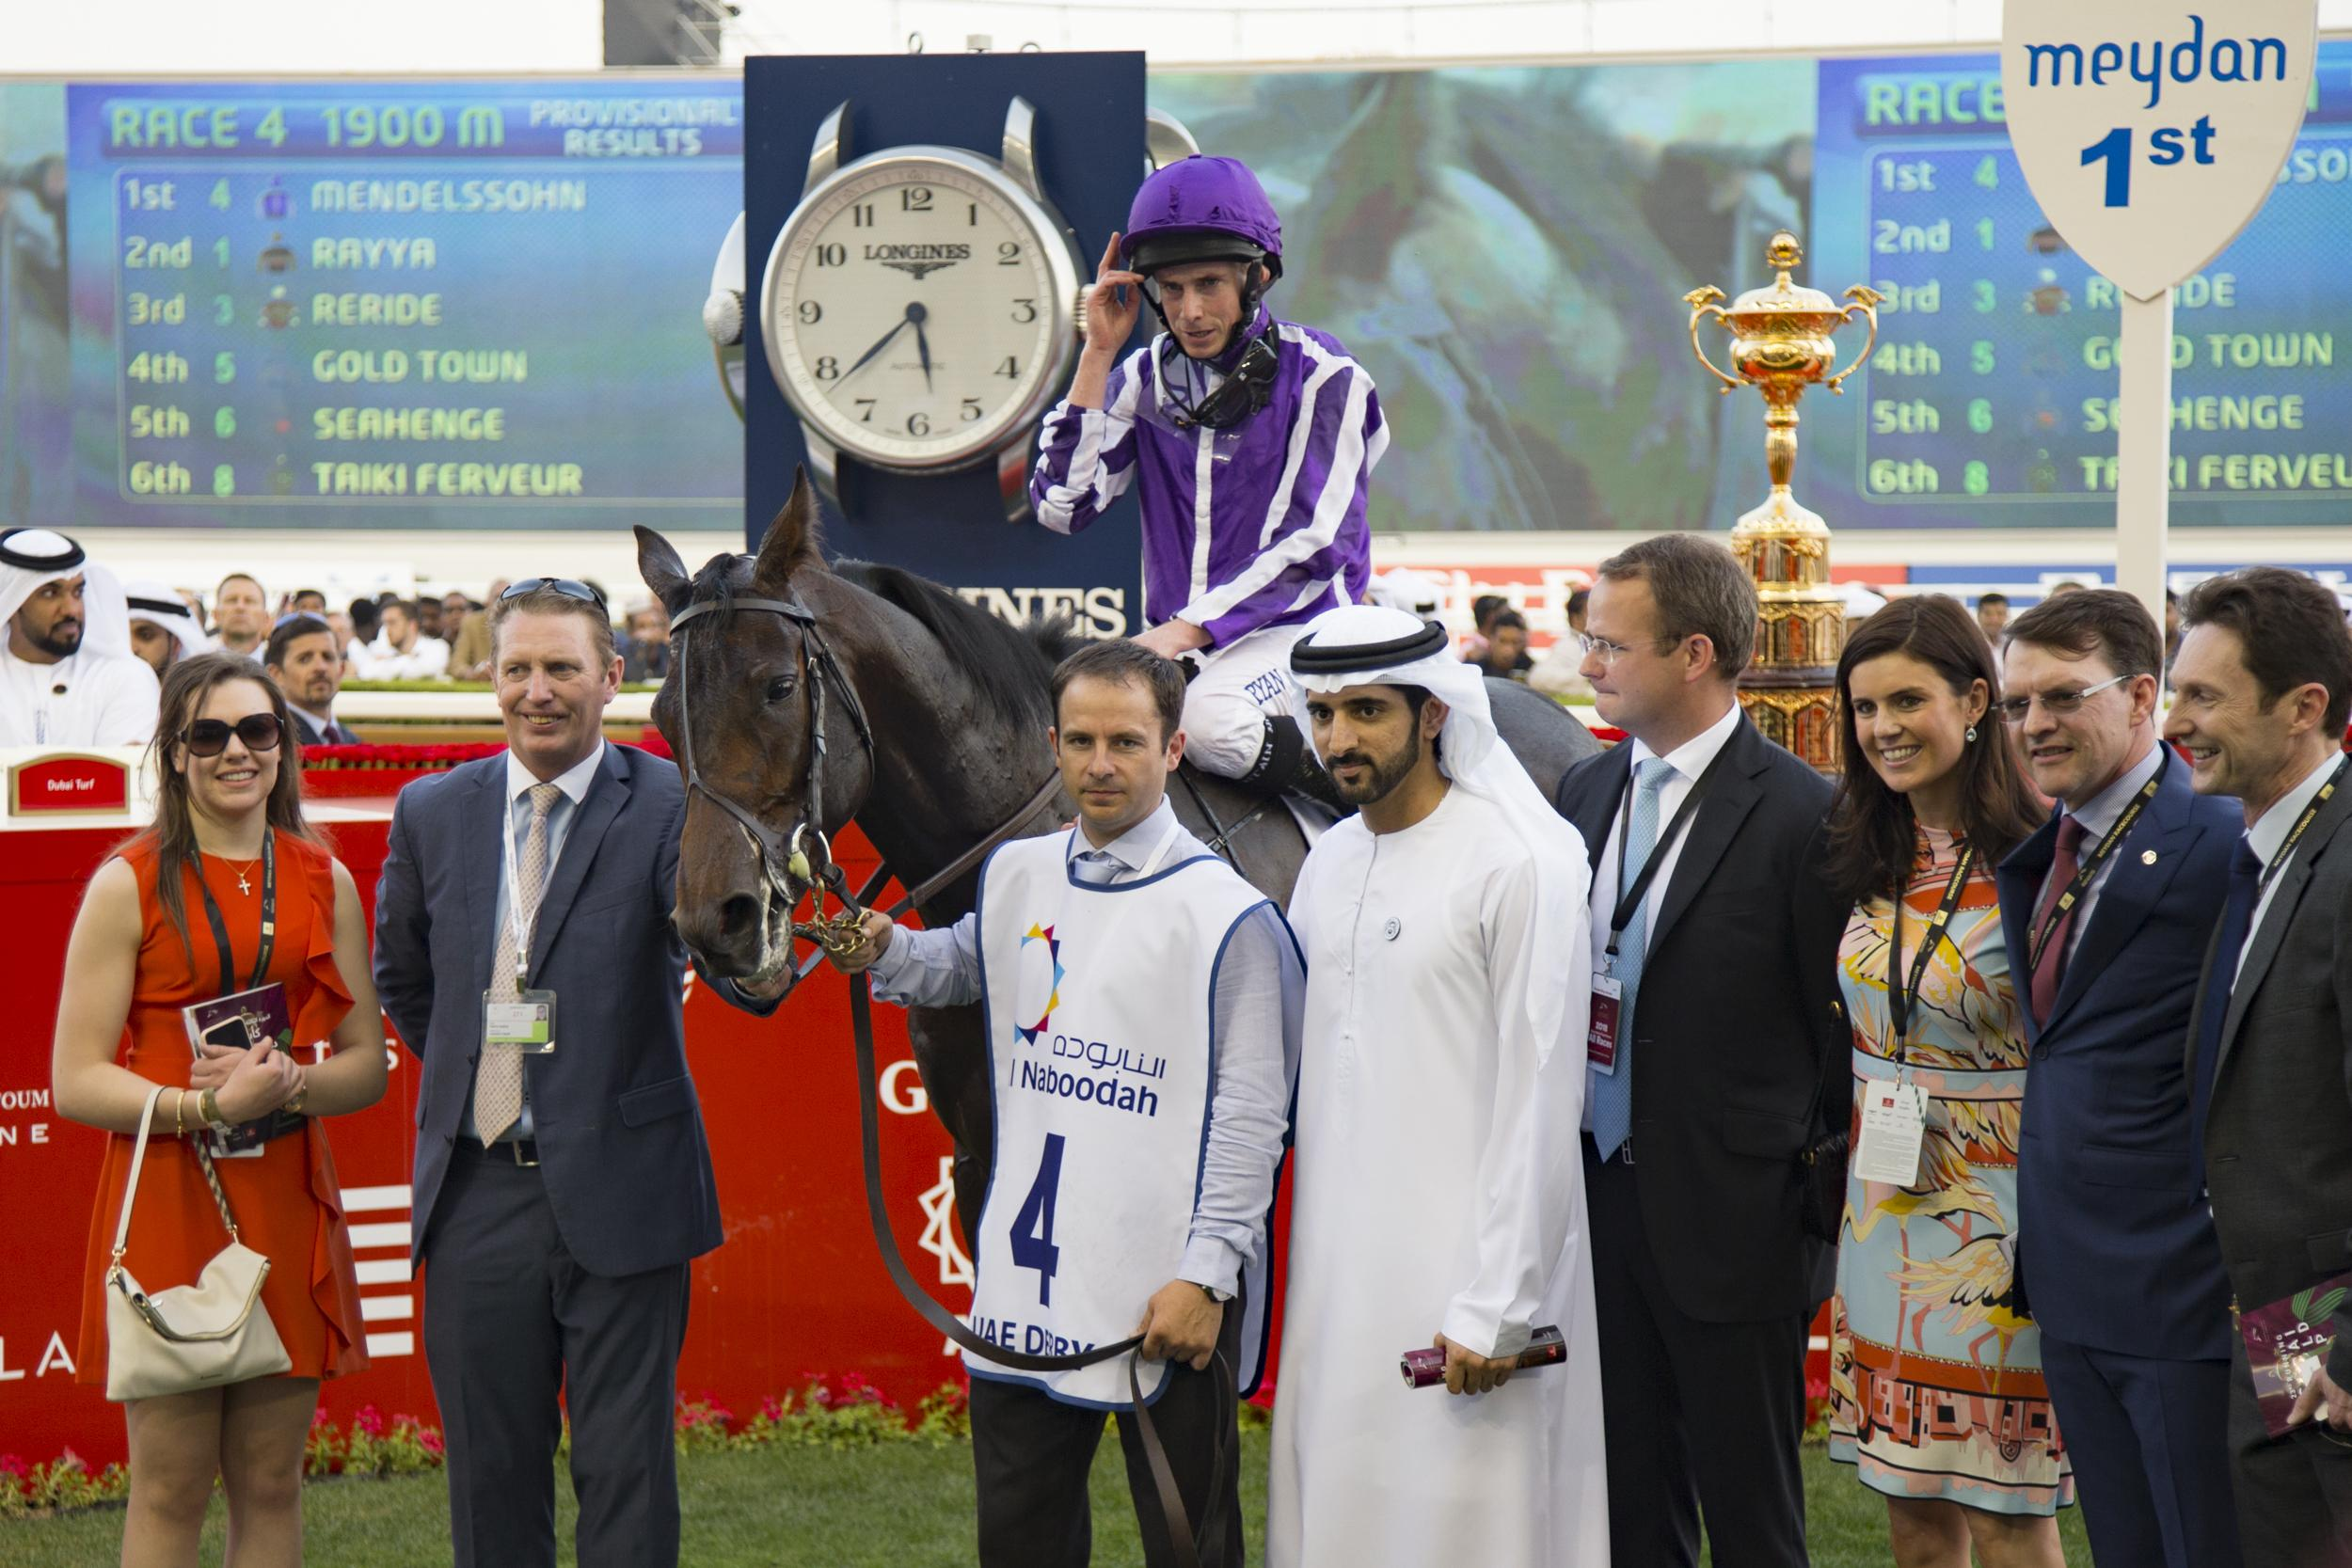 Mendelssohn wins UAE Derby